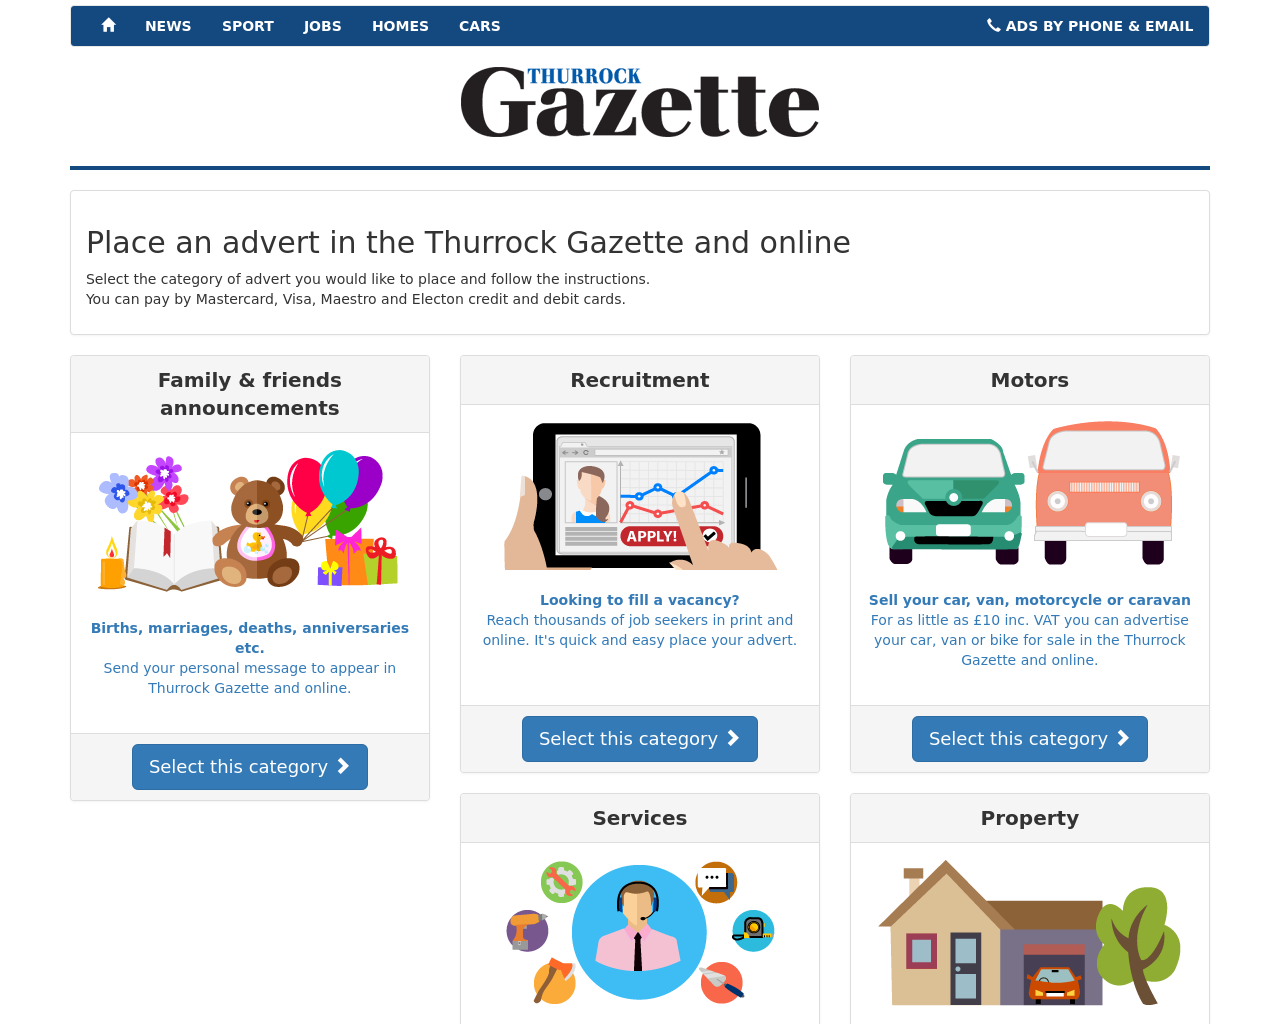 Thurrock-Gazette-Advertising-Reviews-Pricing